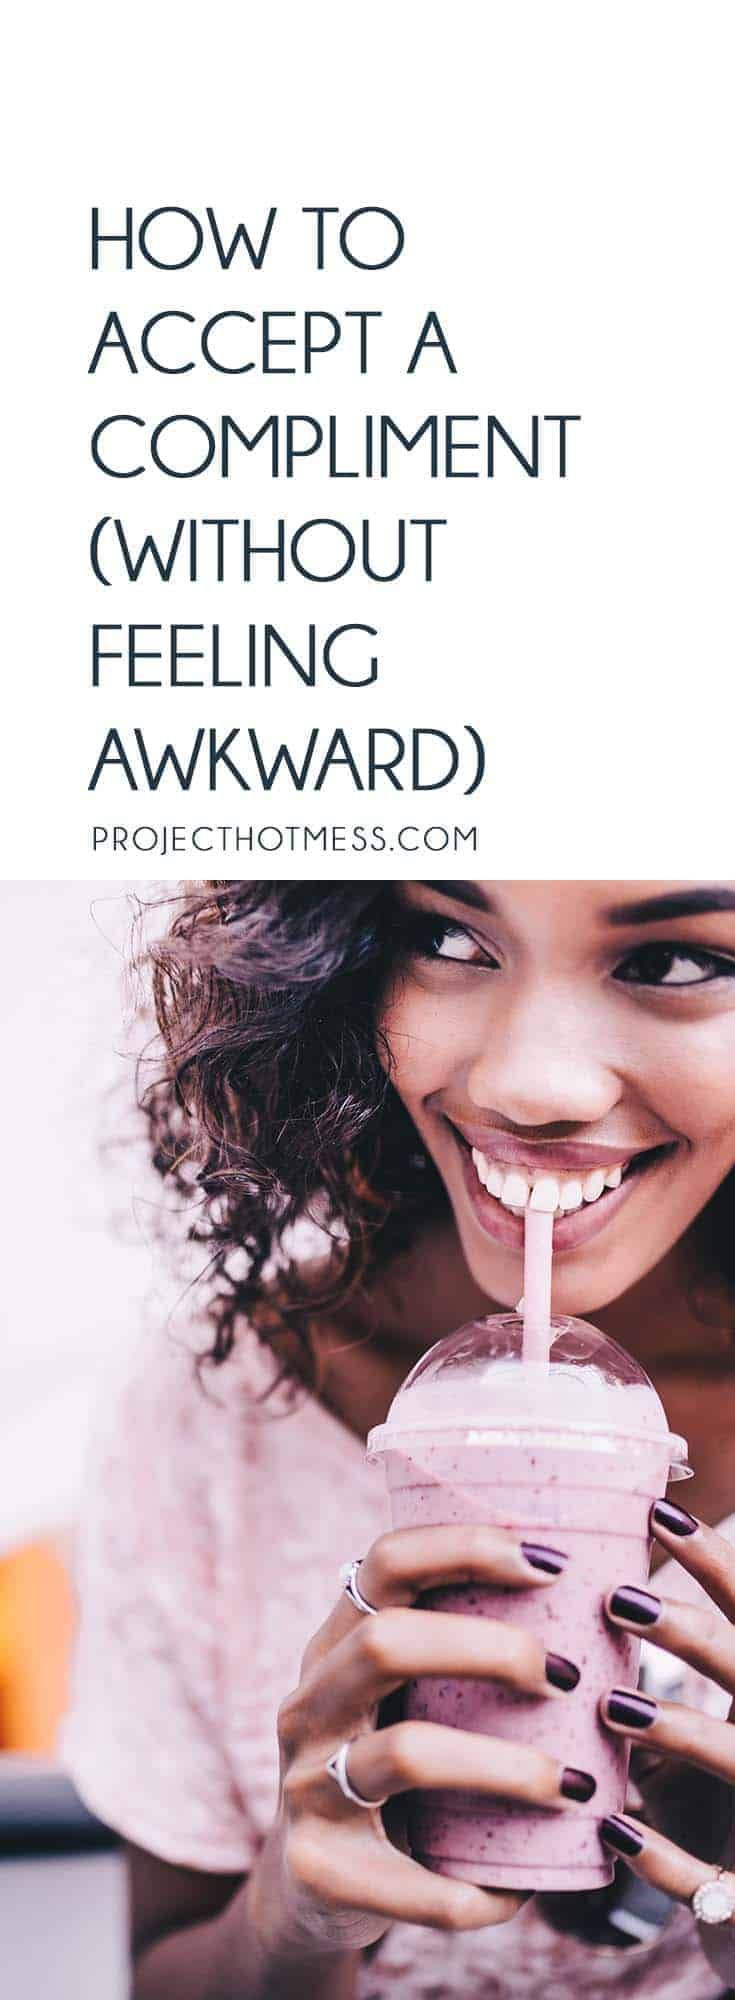 How to accept a compliment without feeling awkward